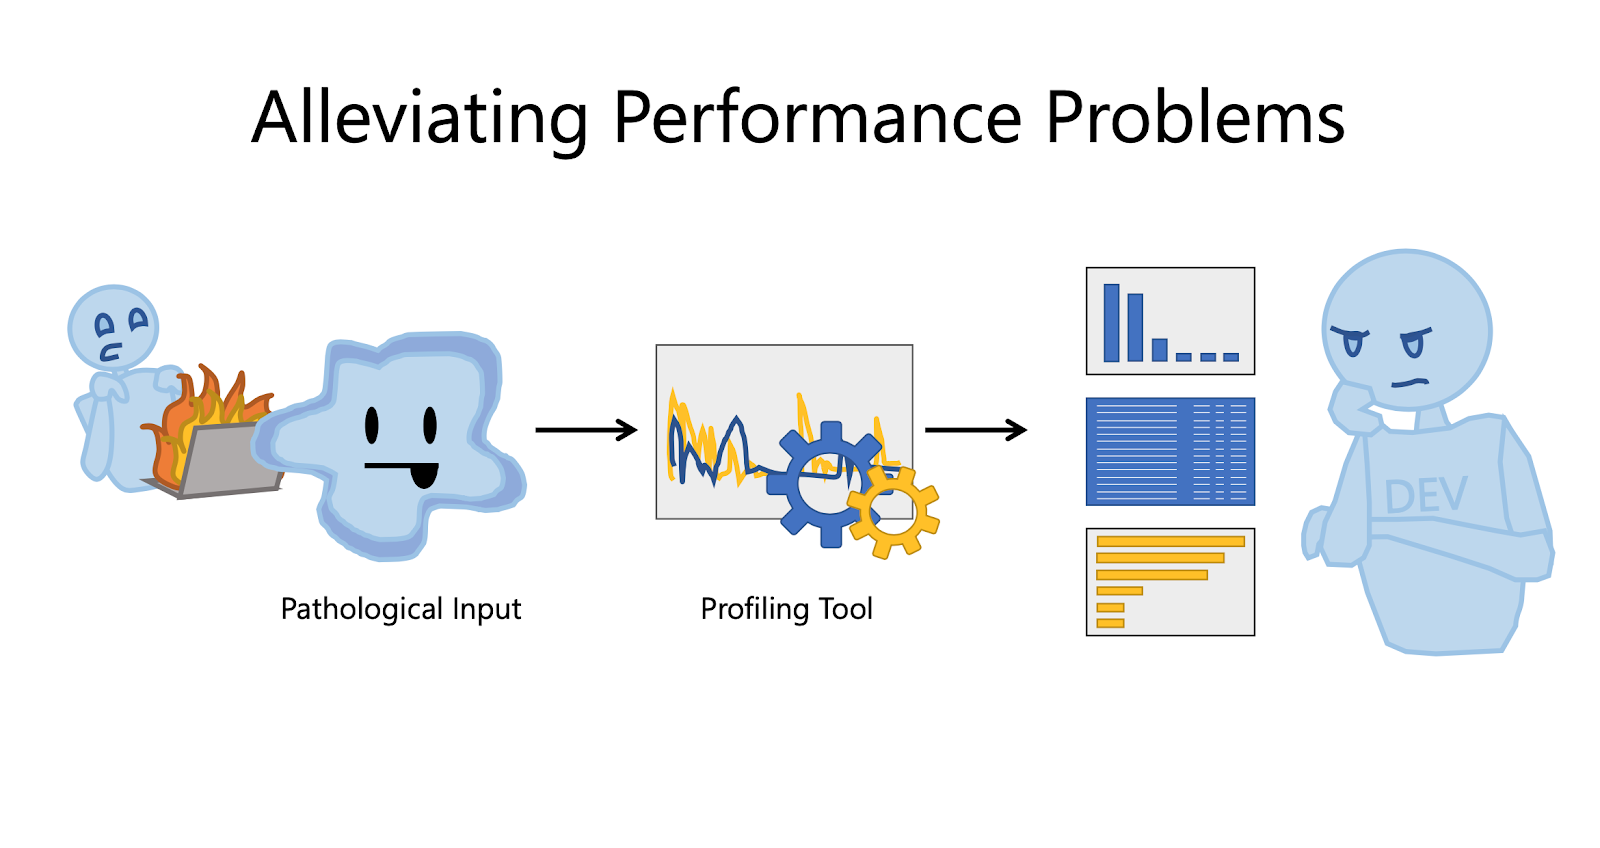 Alleviating Performance Problems